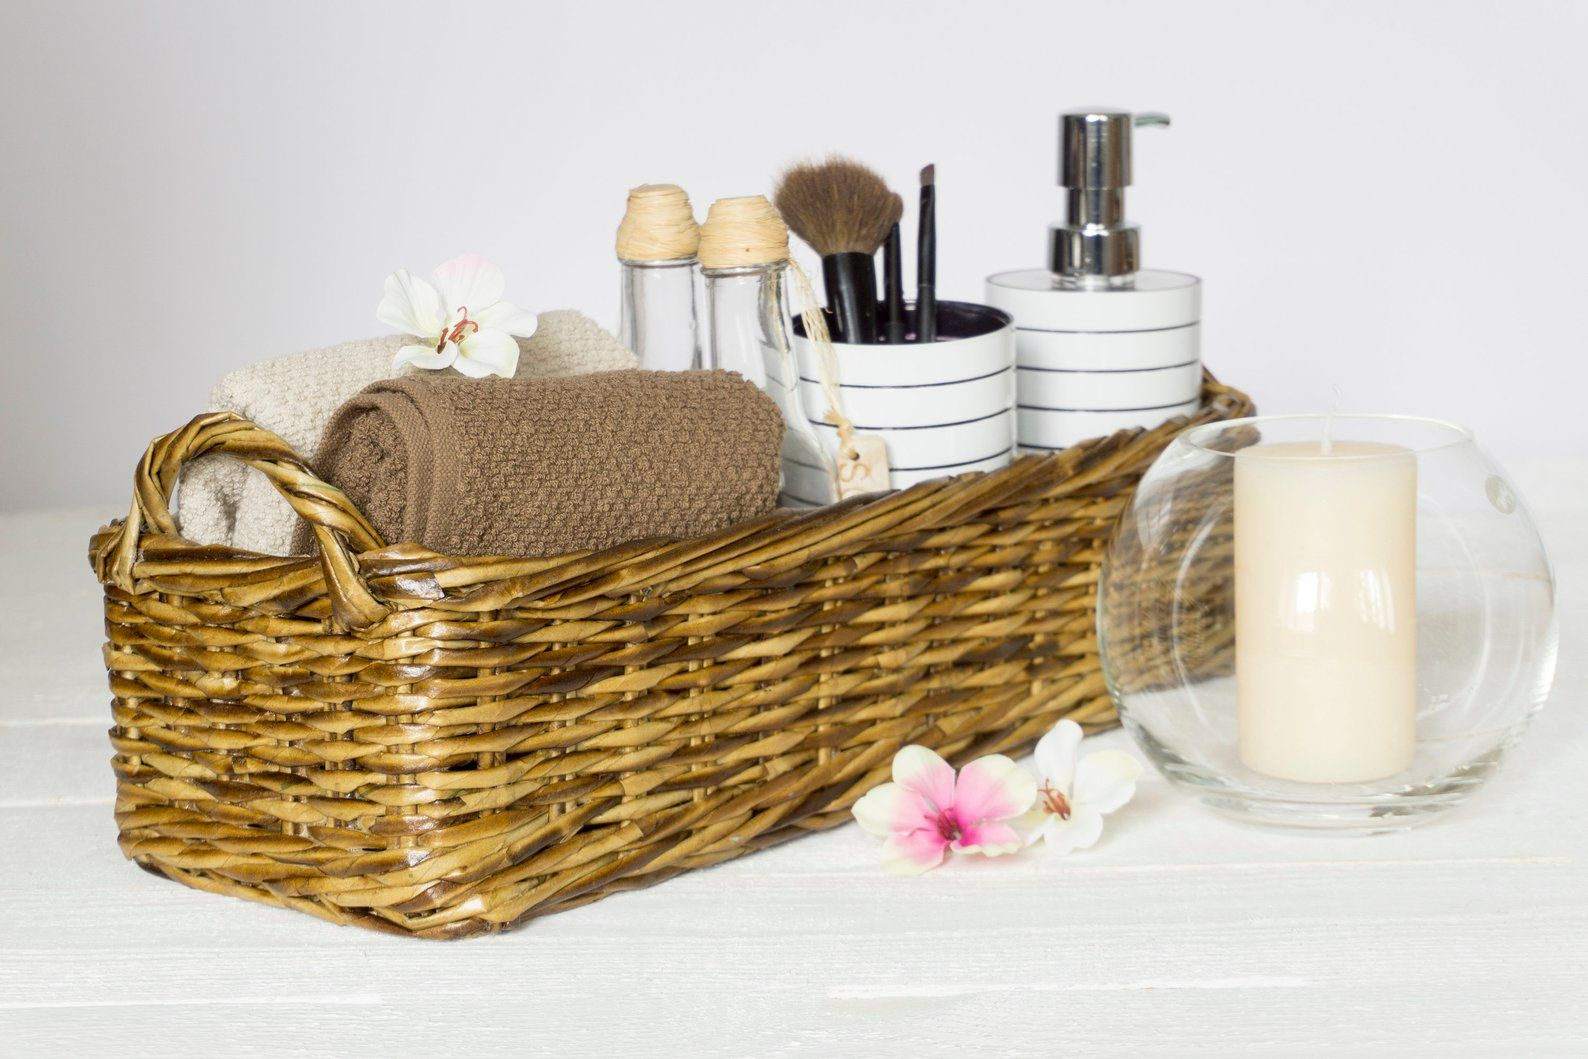 Bathroom Perfume Organizer Small Vanity Tray Storage Wicker Basket Catch All Tray Dresser Tray Vintage Serving Wicker Tray With Handles Wicker Baskets With Handles Wicker Tray Wicker